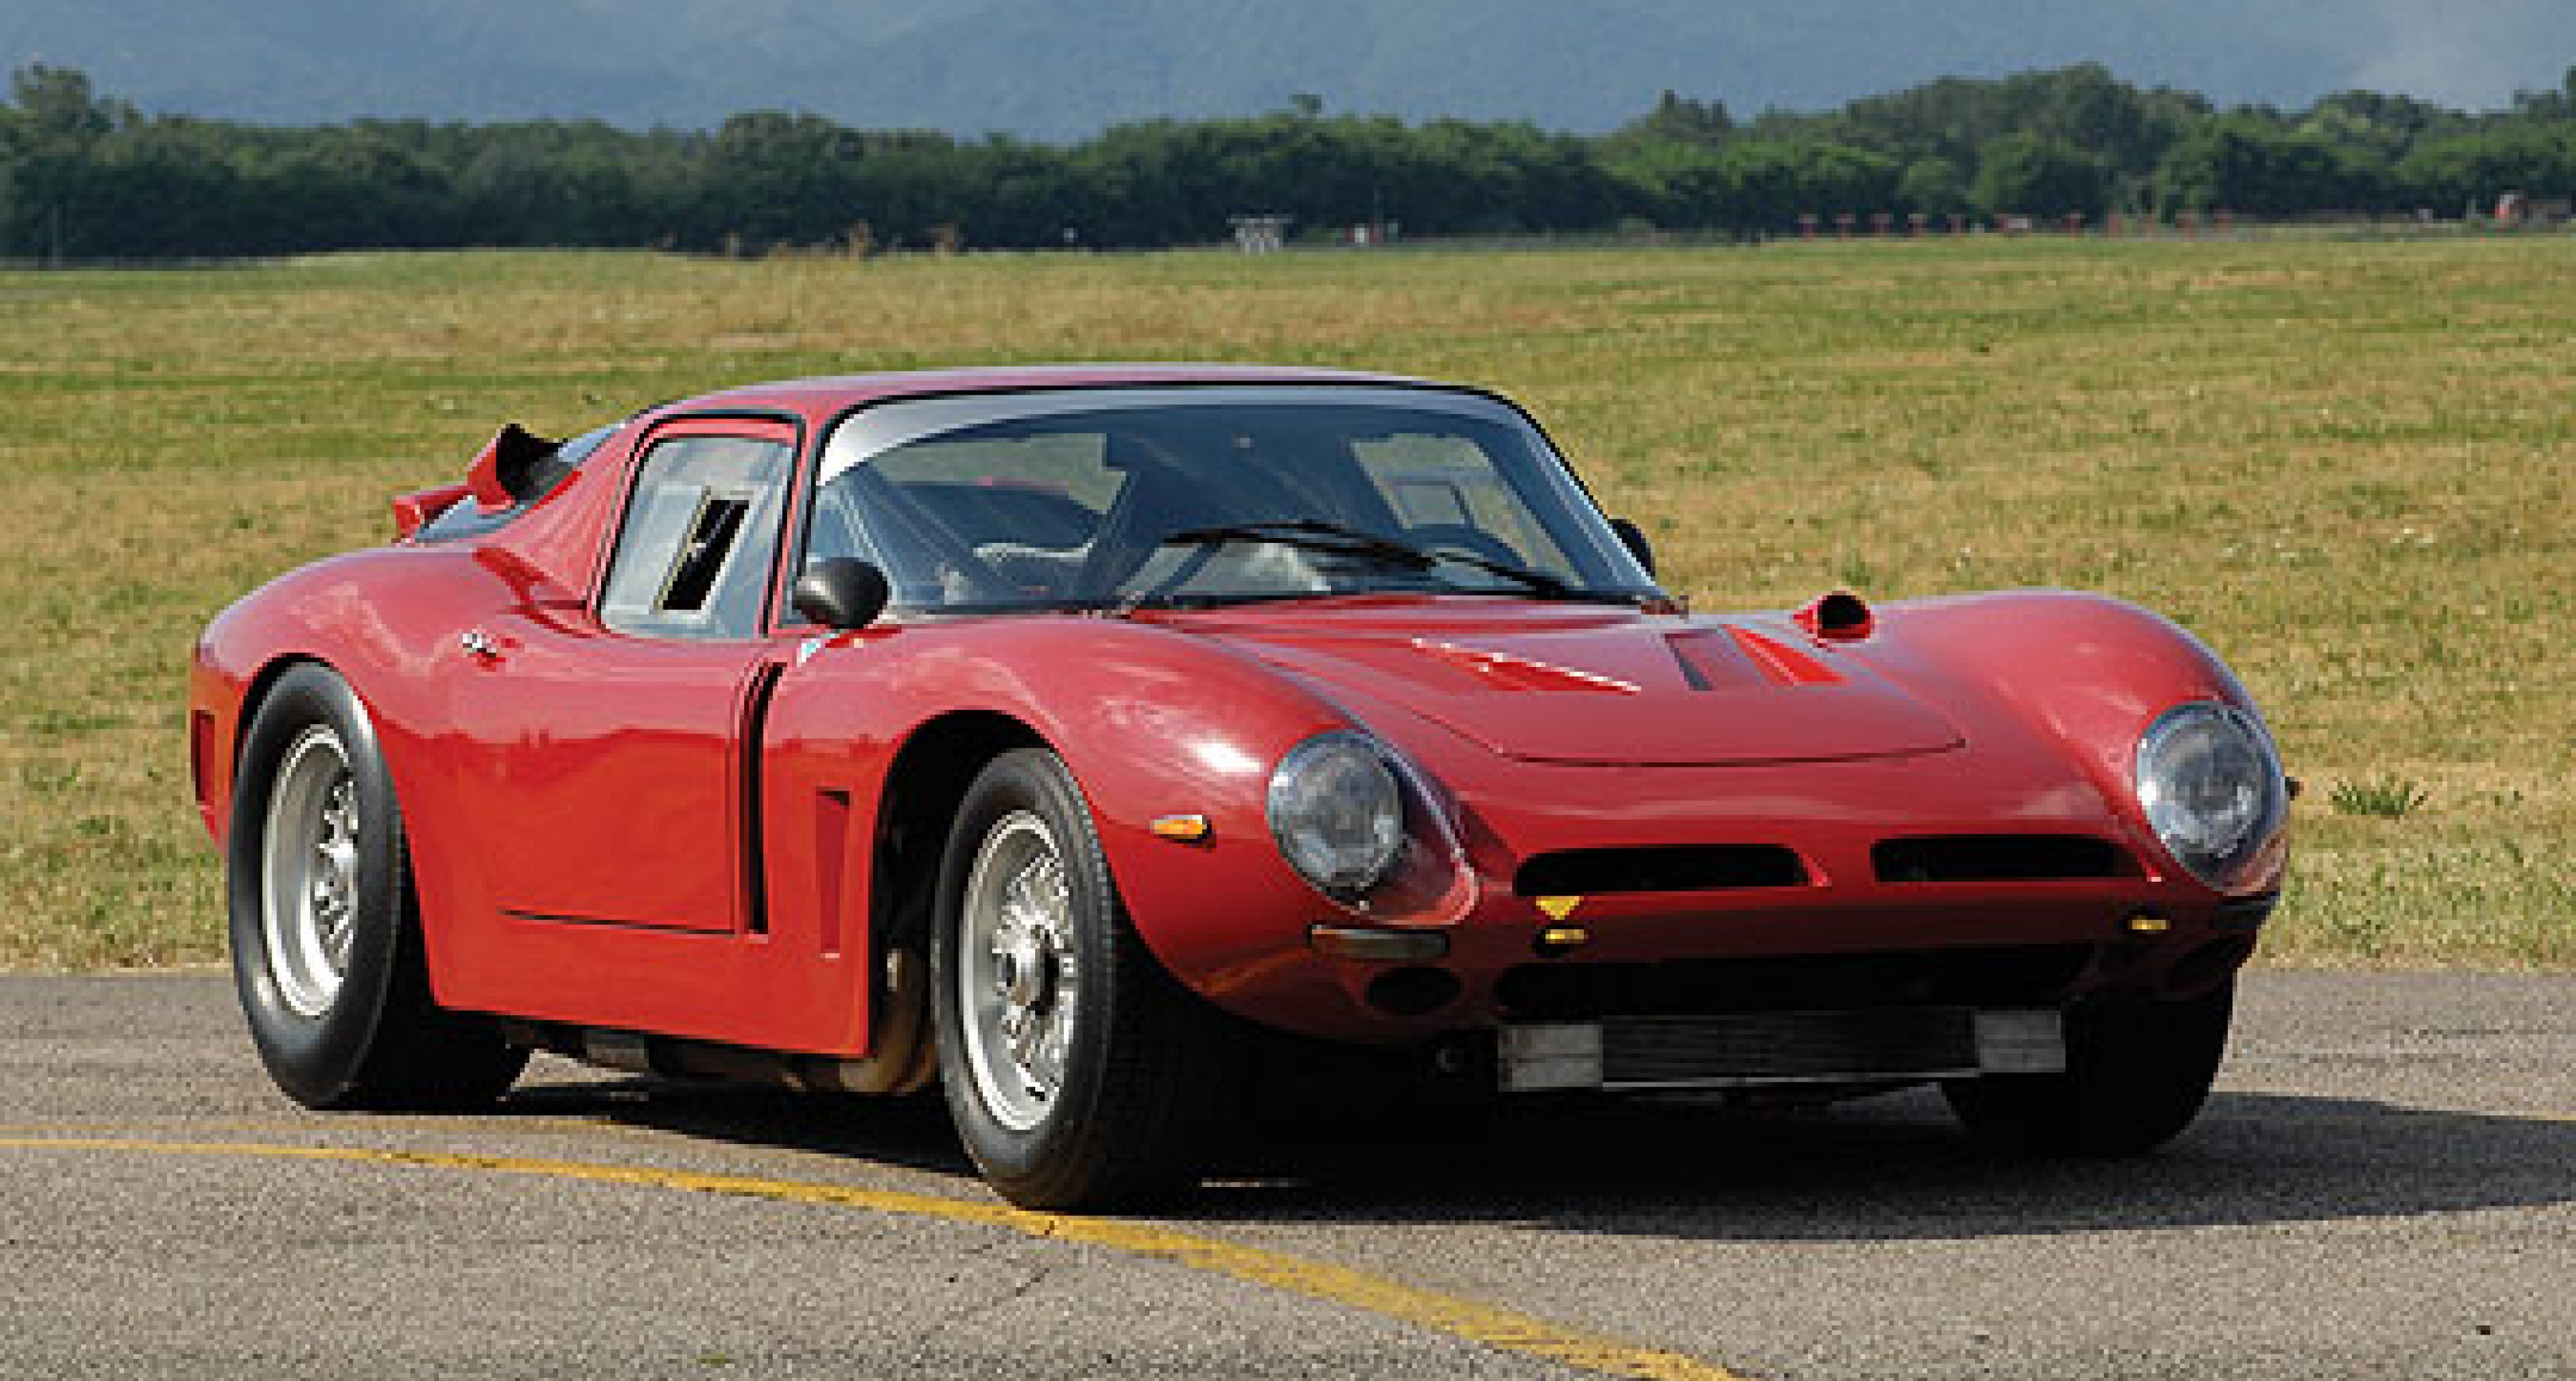 RM Auctions' First British Sale